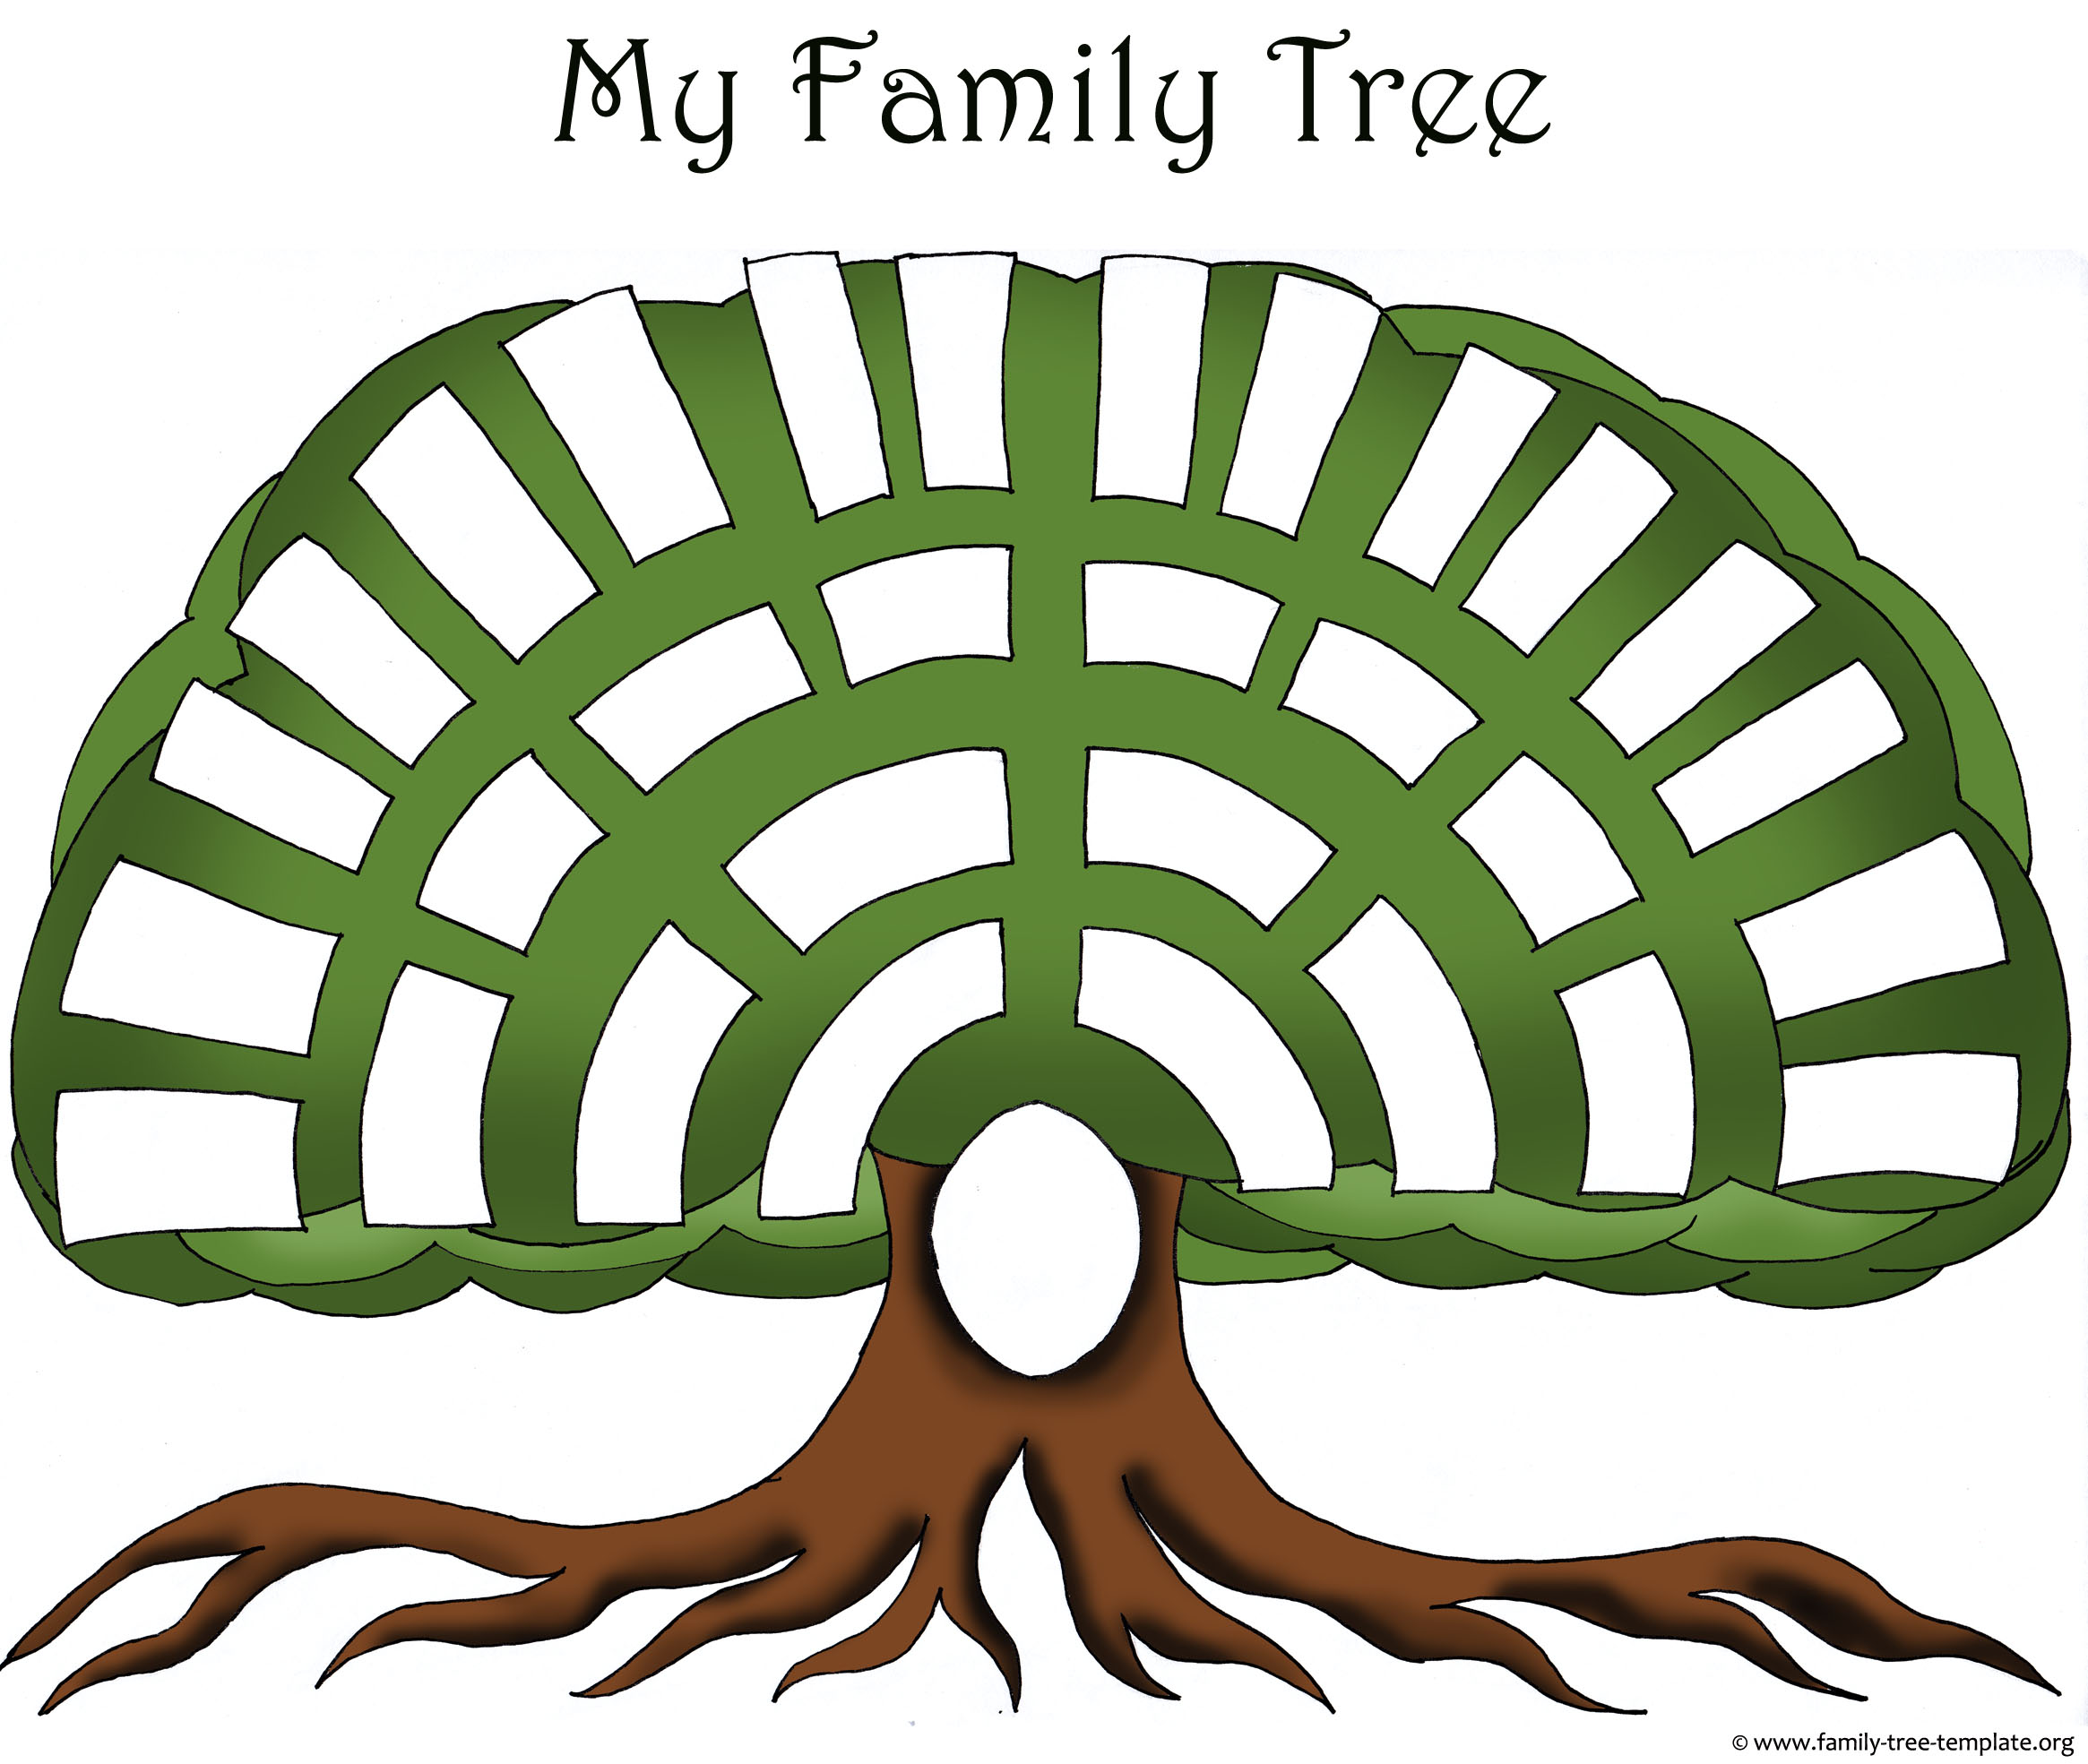 Creative homemade family tree design template with space for great-great-grandparents.